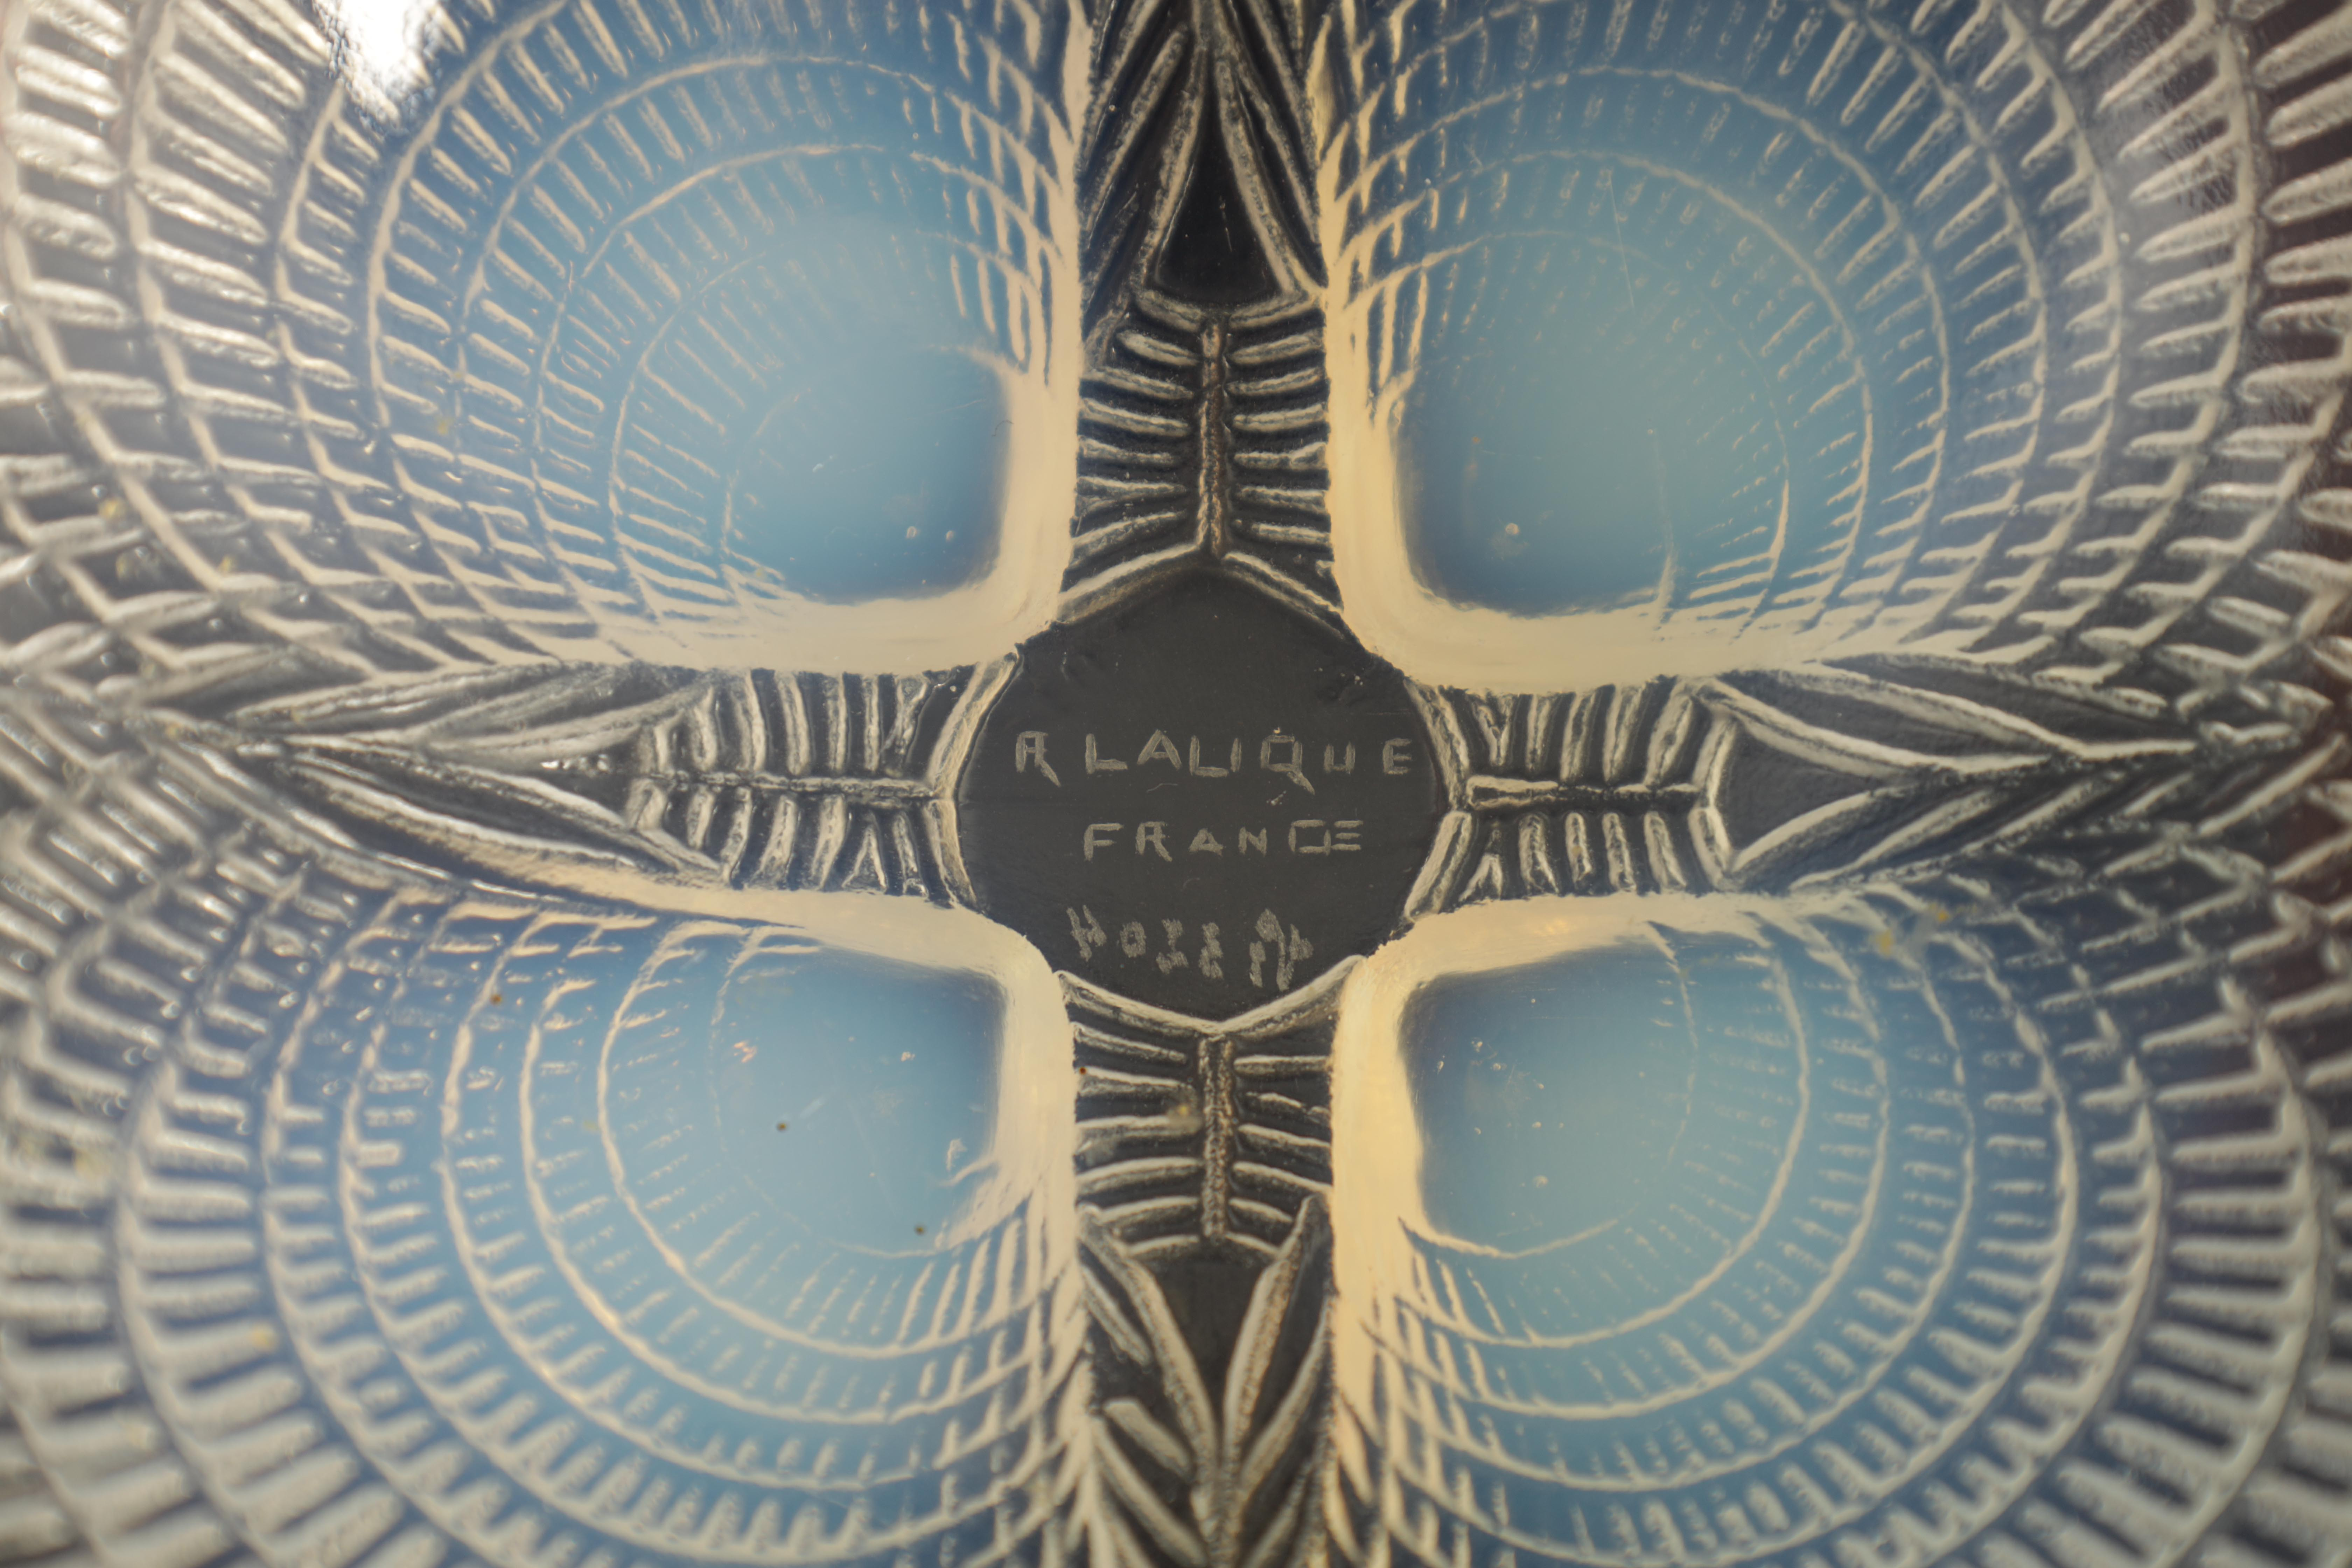 """AN R LALIQUE FRANCE """"COQUILLES"""" CLEAR AND OPALESCENT SHALLOW GLASS DISH 13cm diameter - wheel - Image 4 of 5"""